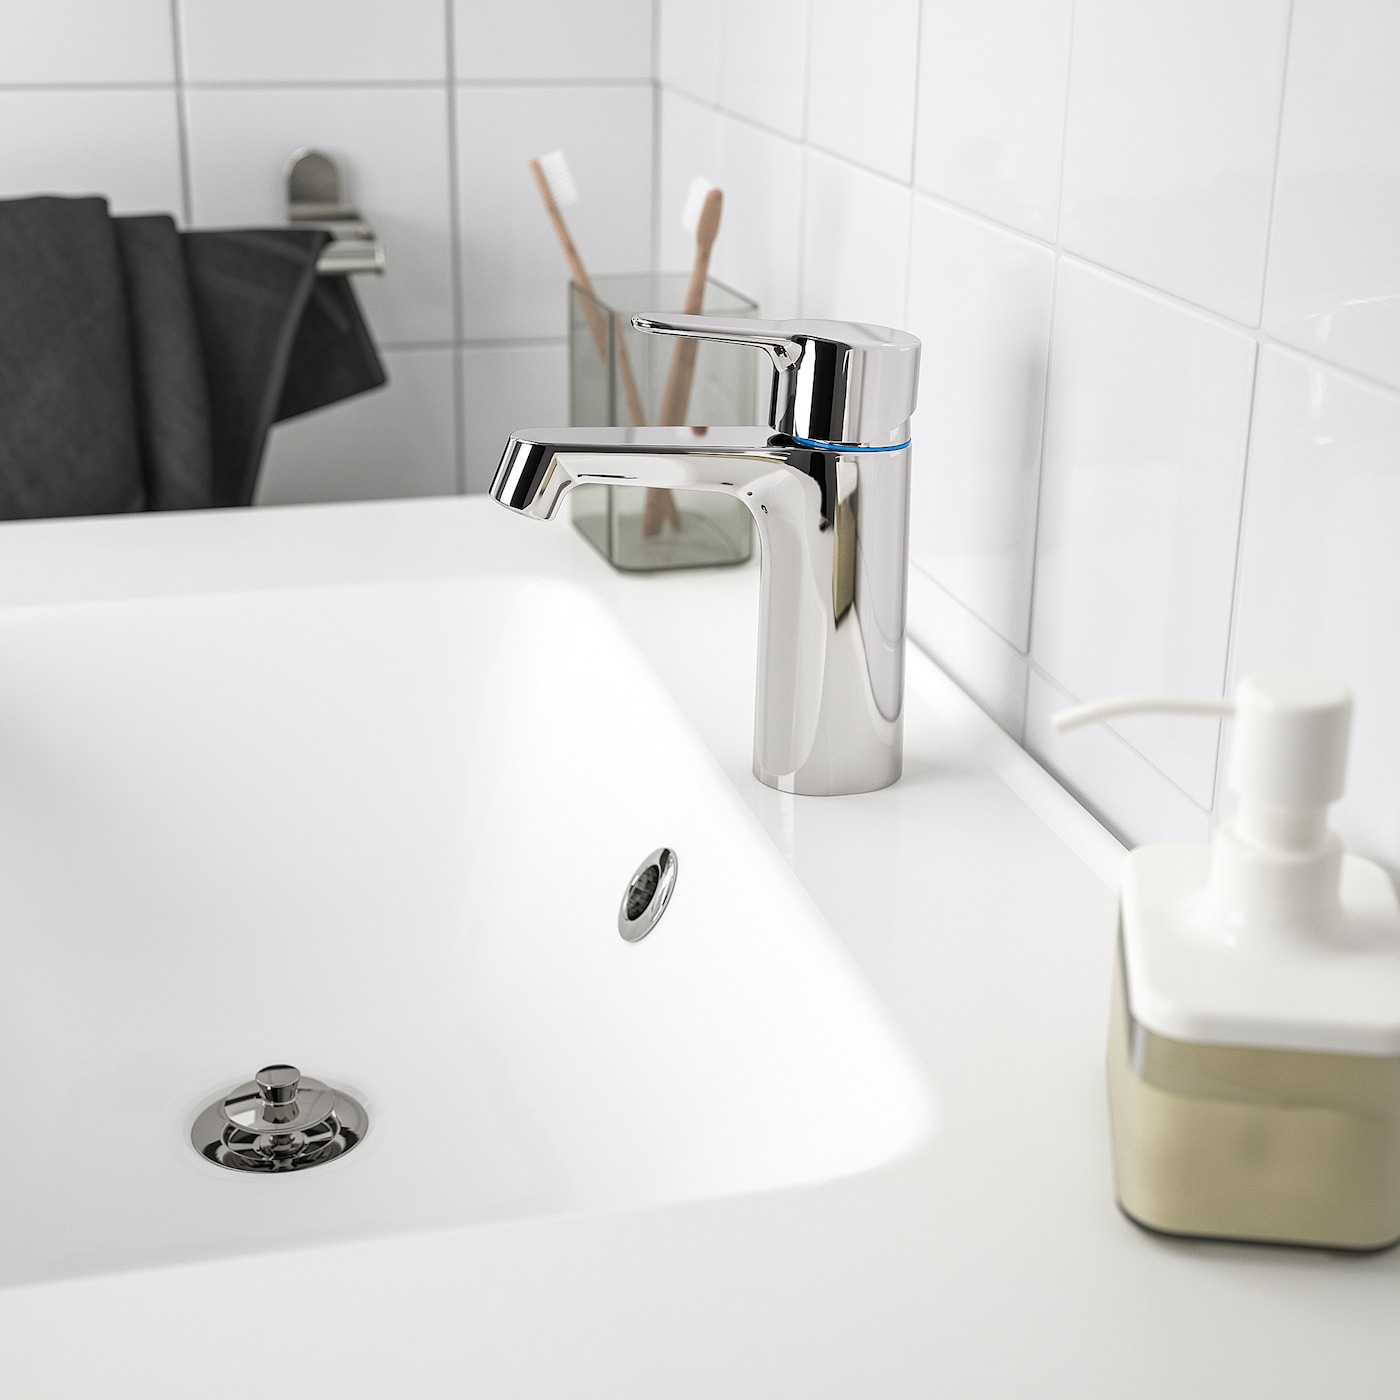 BROGRUND Wash-basin mixer tap with strainer, chrome-plated